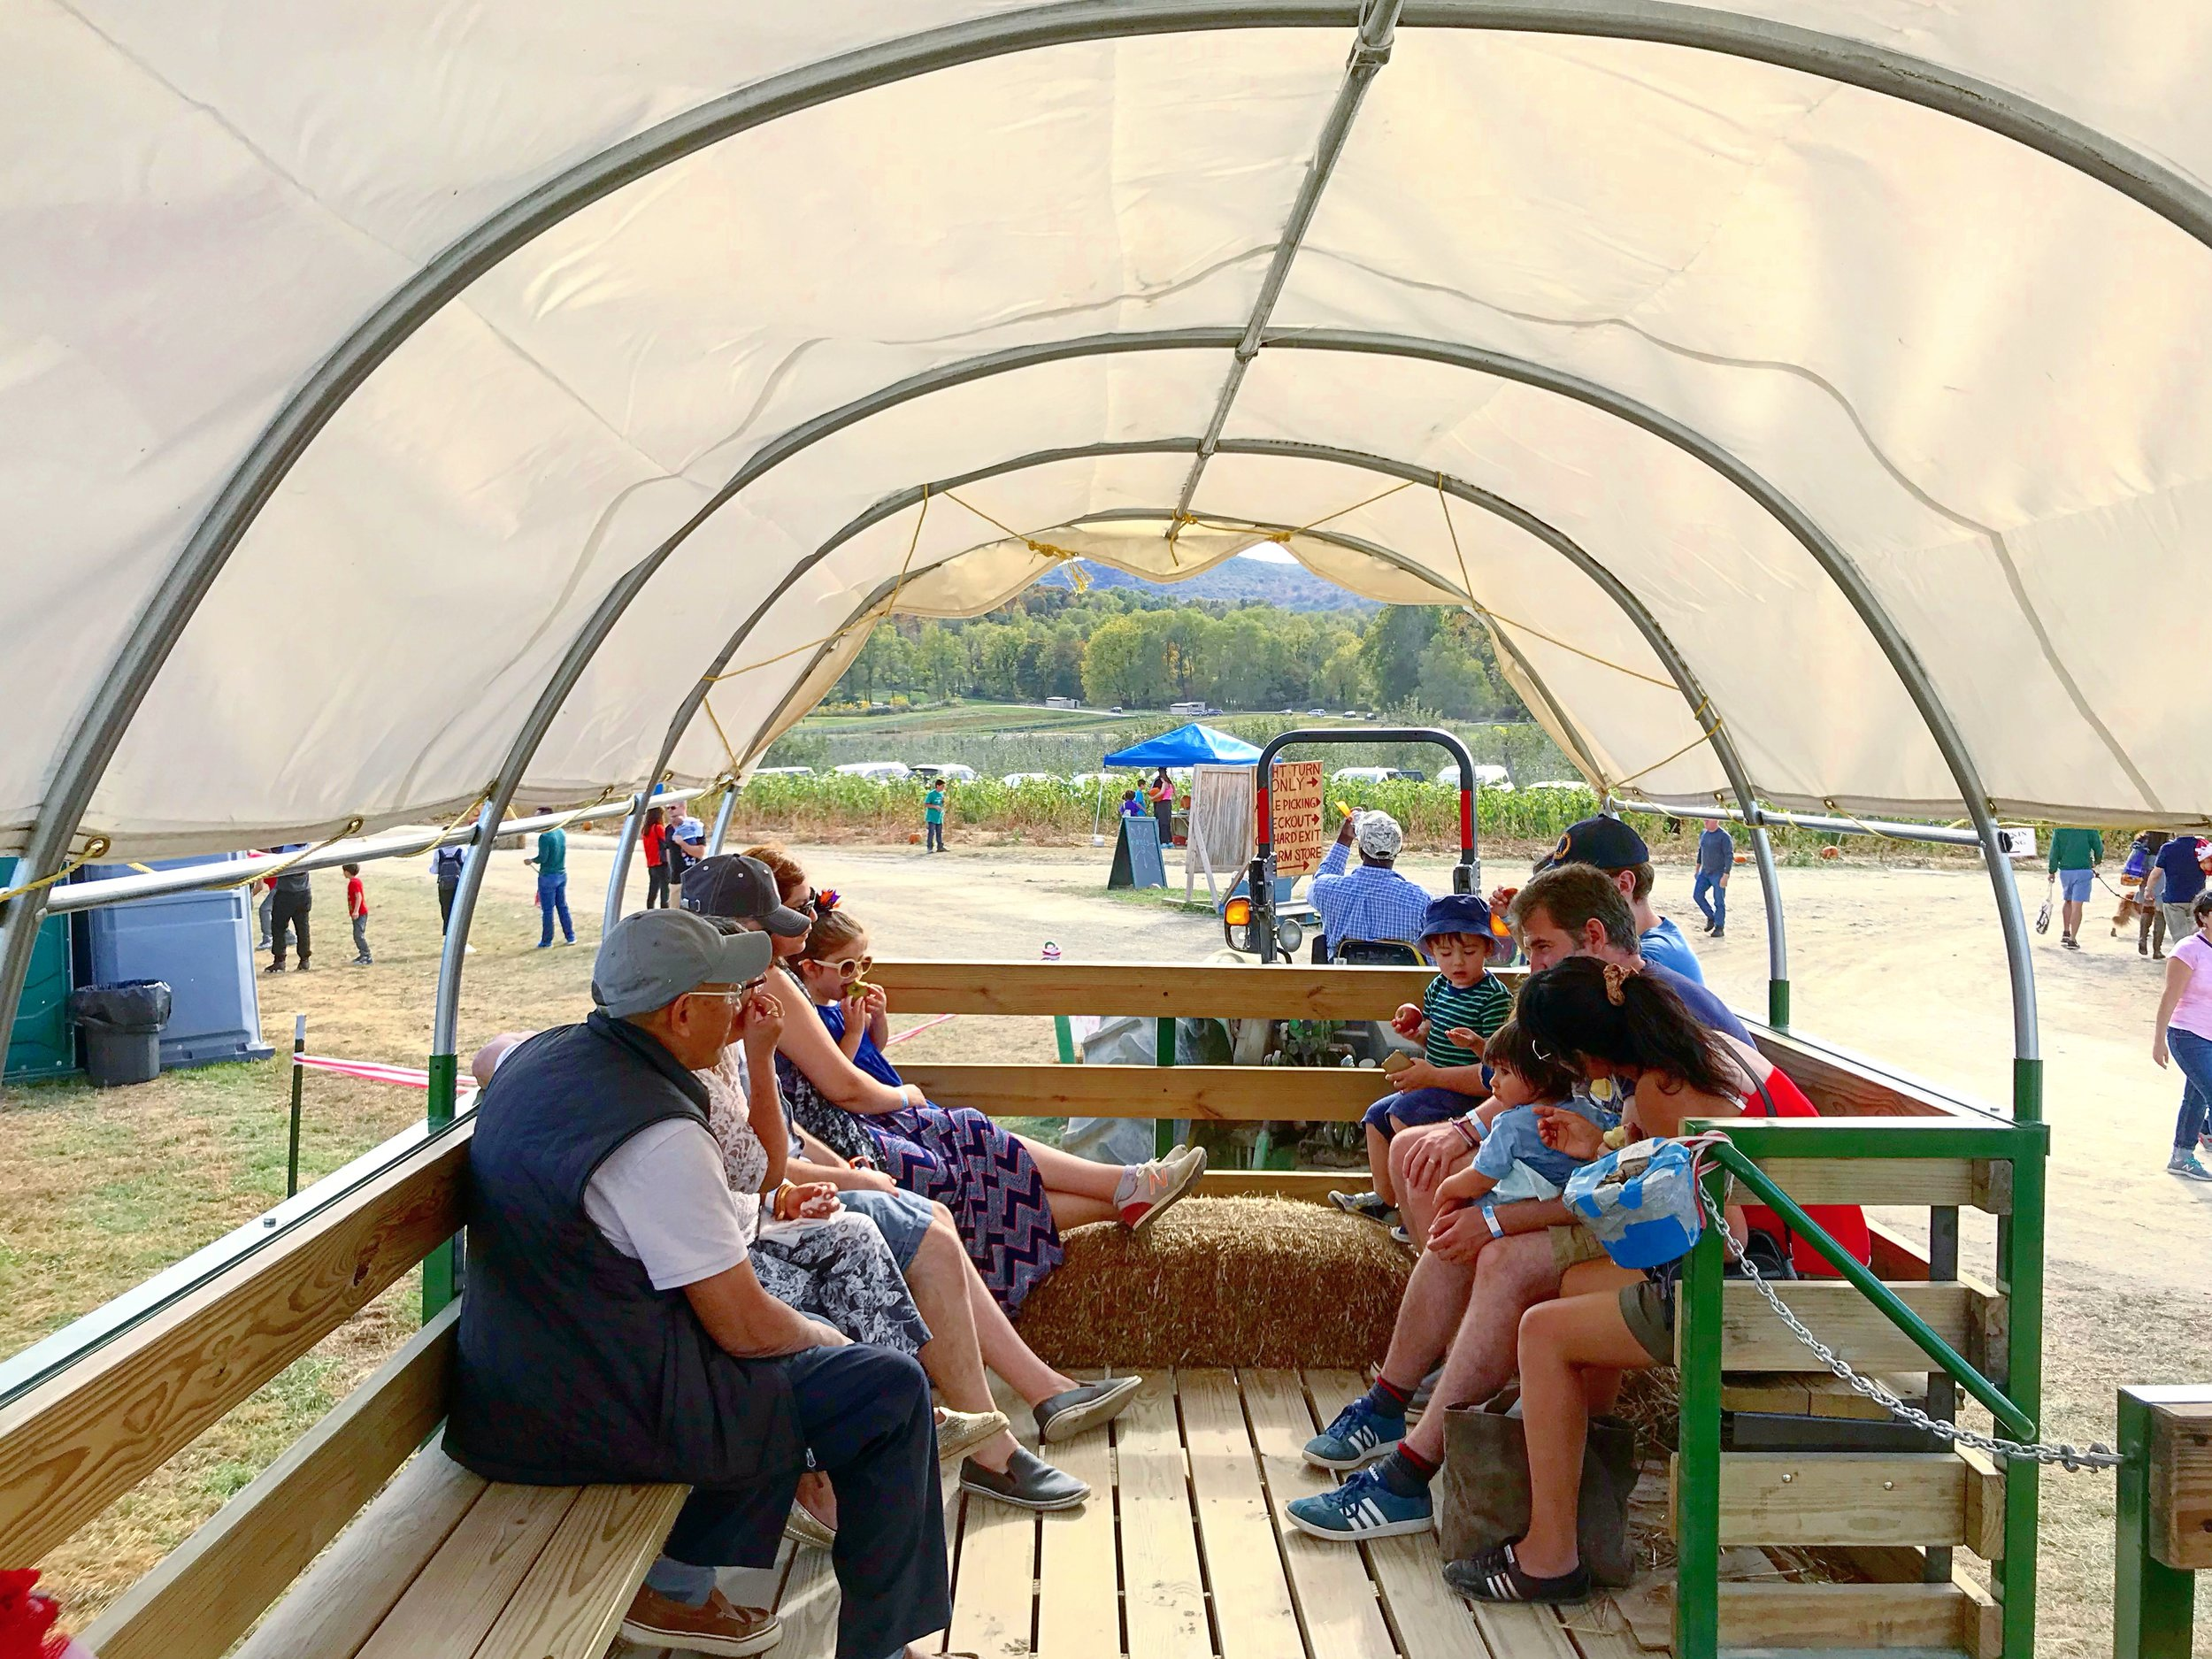 The Hayride is free and goes around the entire Farm.